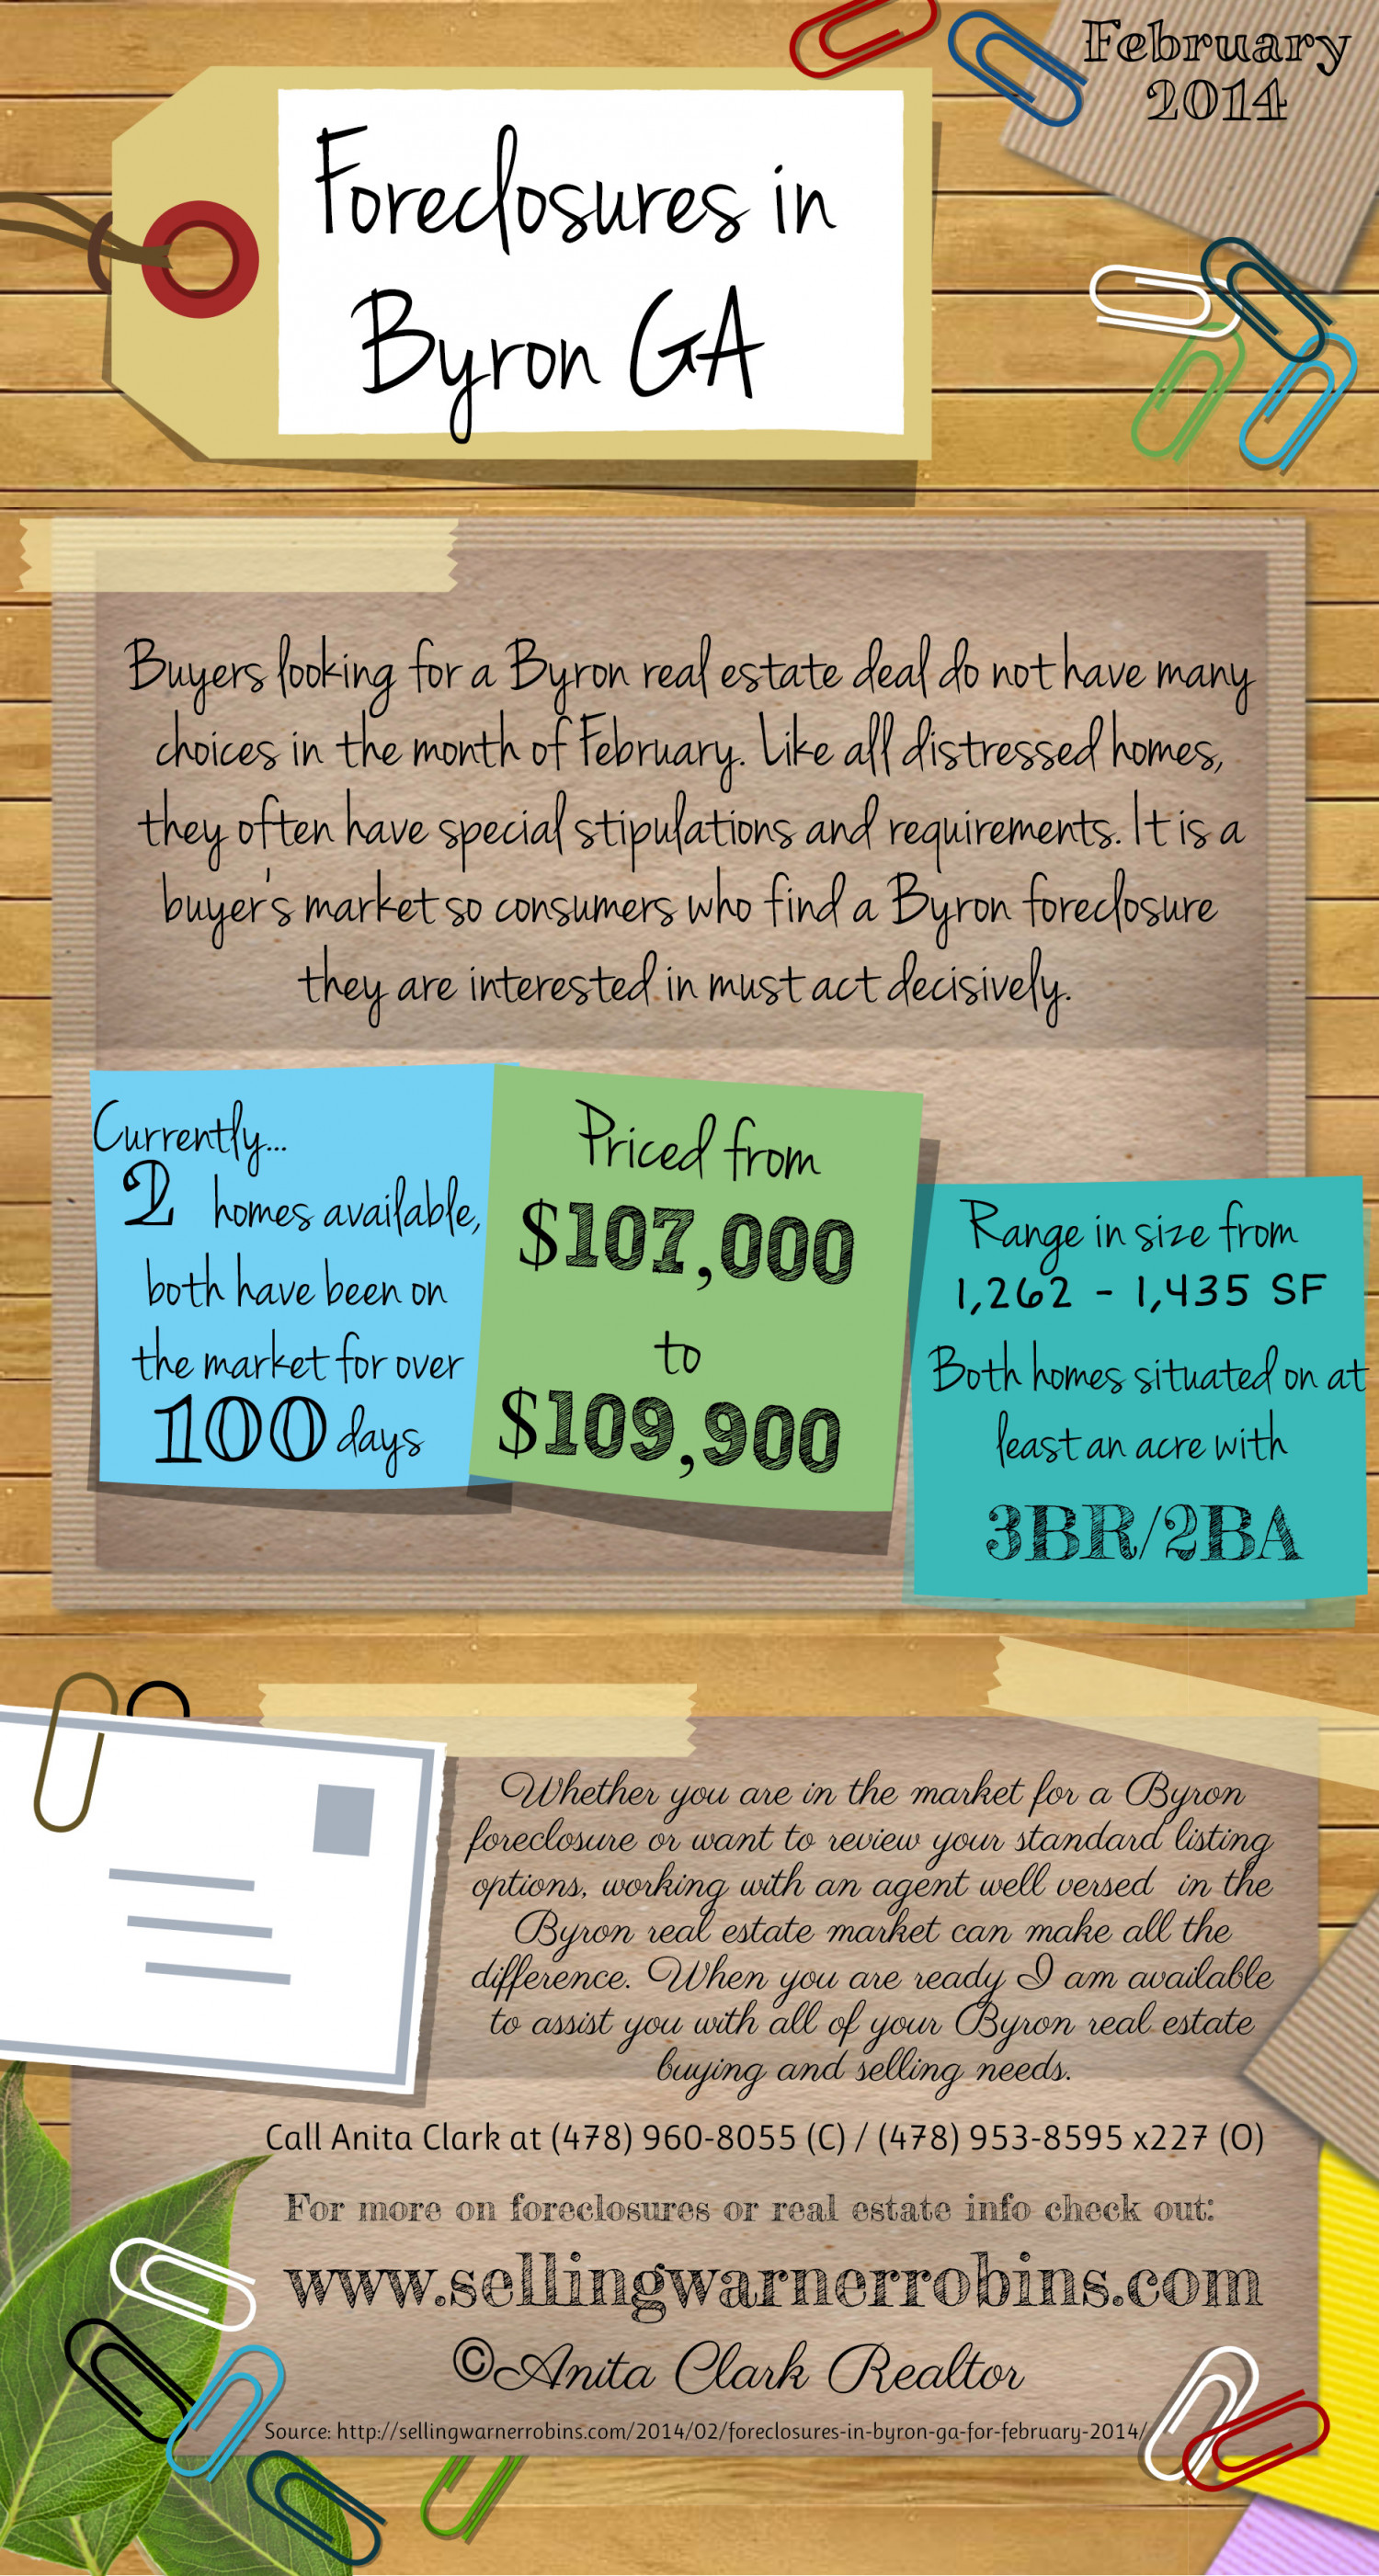 Foreclosures in Byron GA for February 2014 Infographic